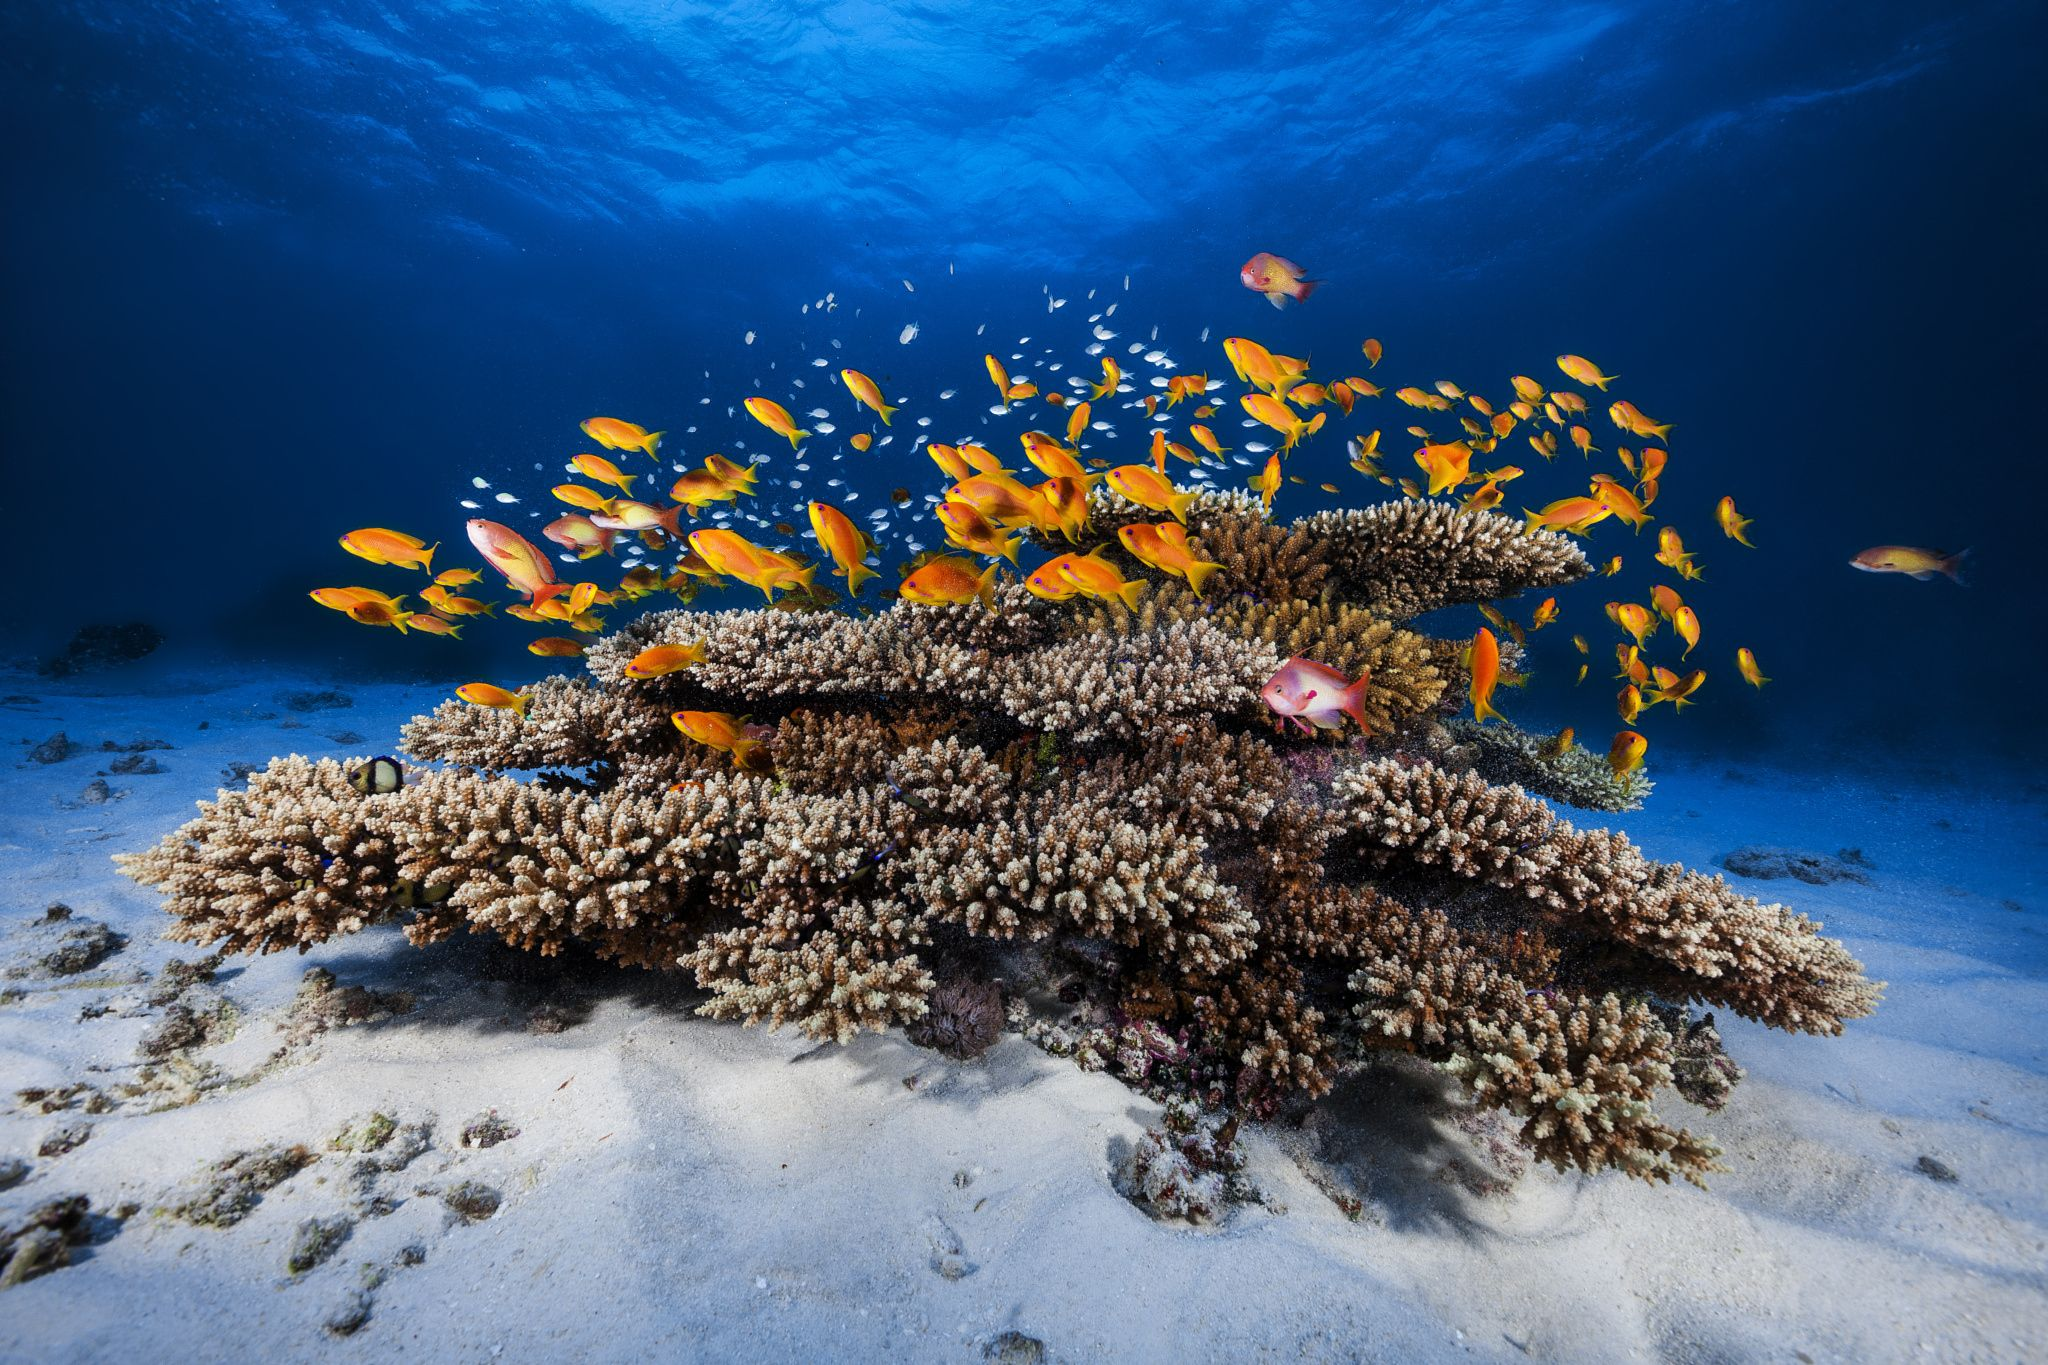 Marine life by Gaby Barathieu on 500px